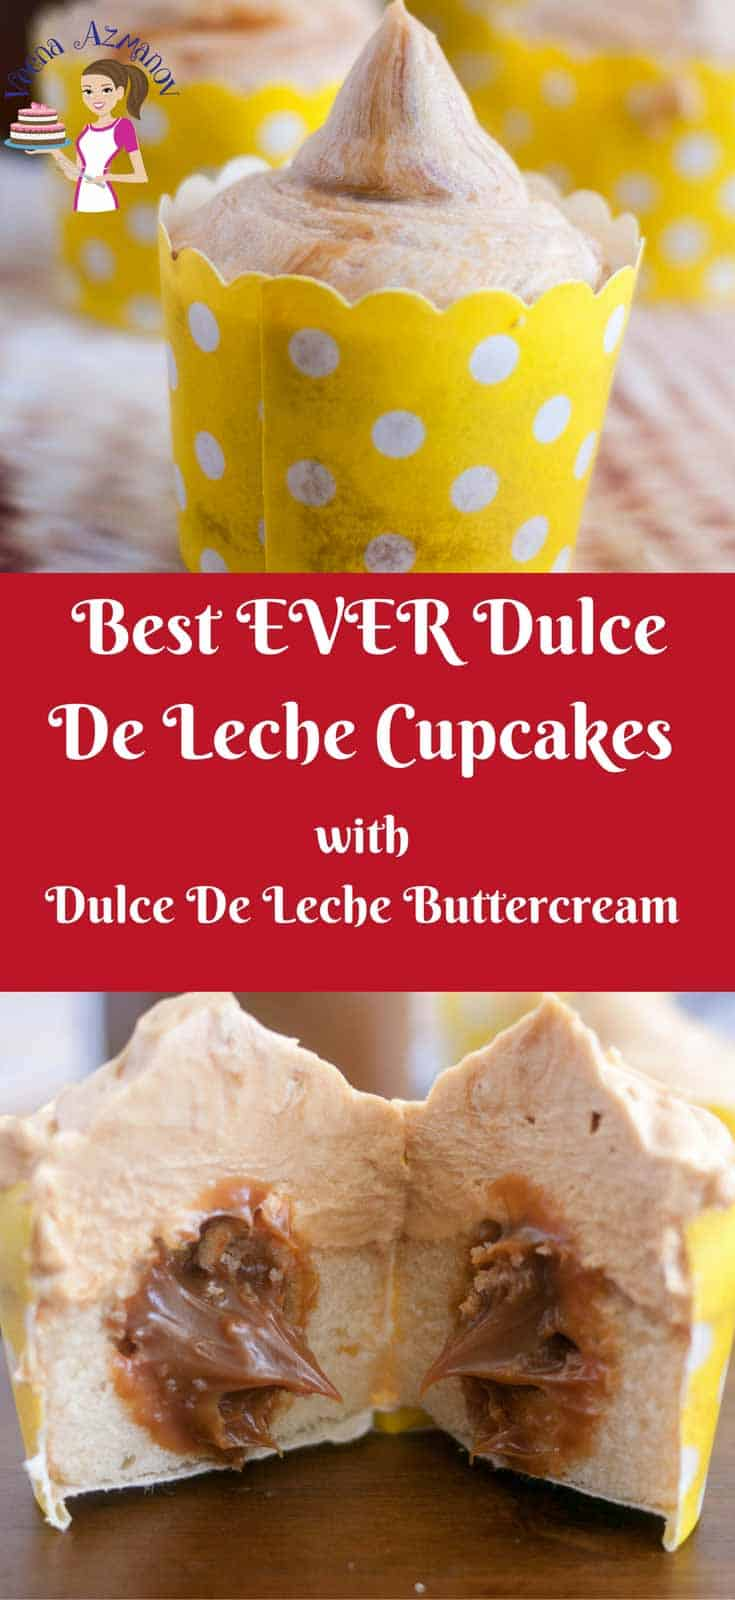 The Dulce de leche cupcakes recipe have a light and fluffy vanilla sponge with creamy leche centers topped with rich dulce de leche buttercream. They are an addiction, so you can't just stop at one. Simple and easy treat for kids or adults.